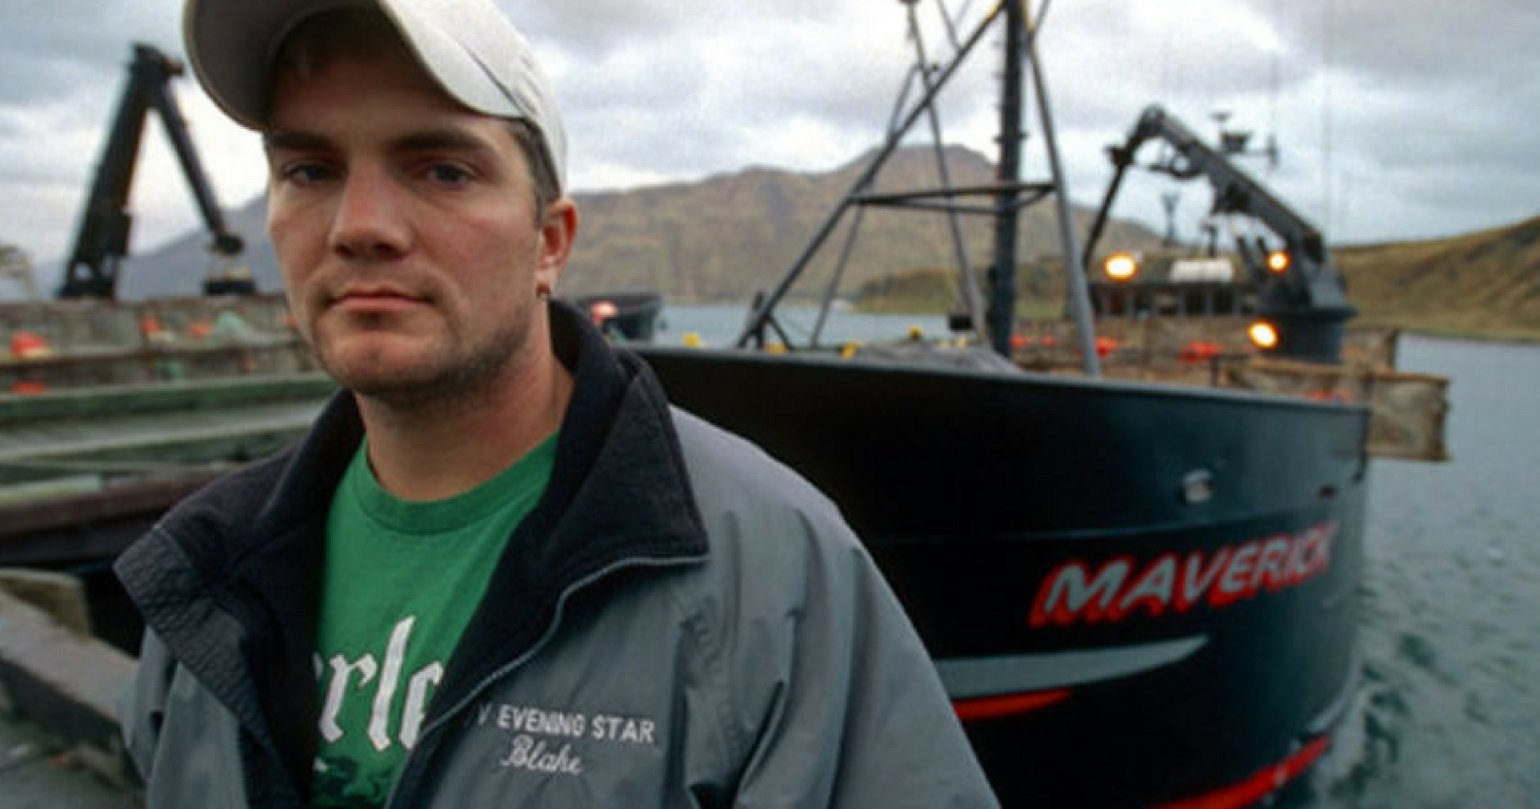 TMZ: 'Deadliest Catch' capt Blake Painter dies in Astoria